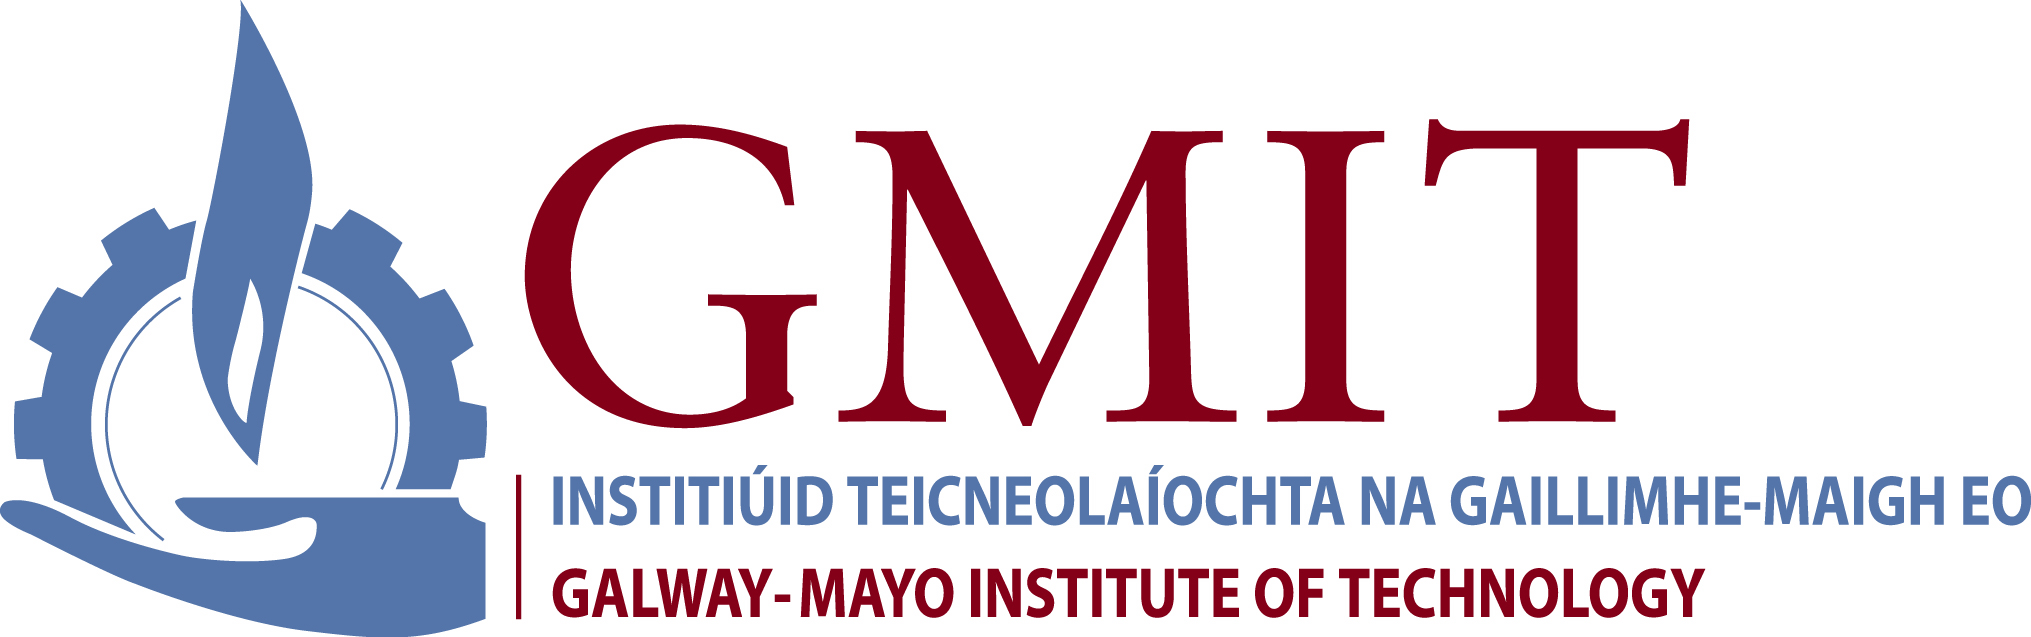 logo_Galway-Mayo Institute of Technology